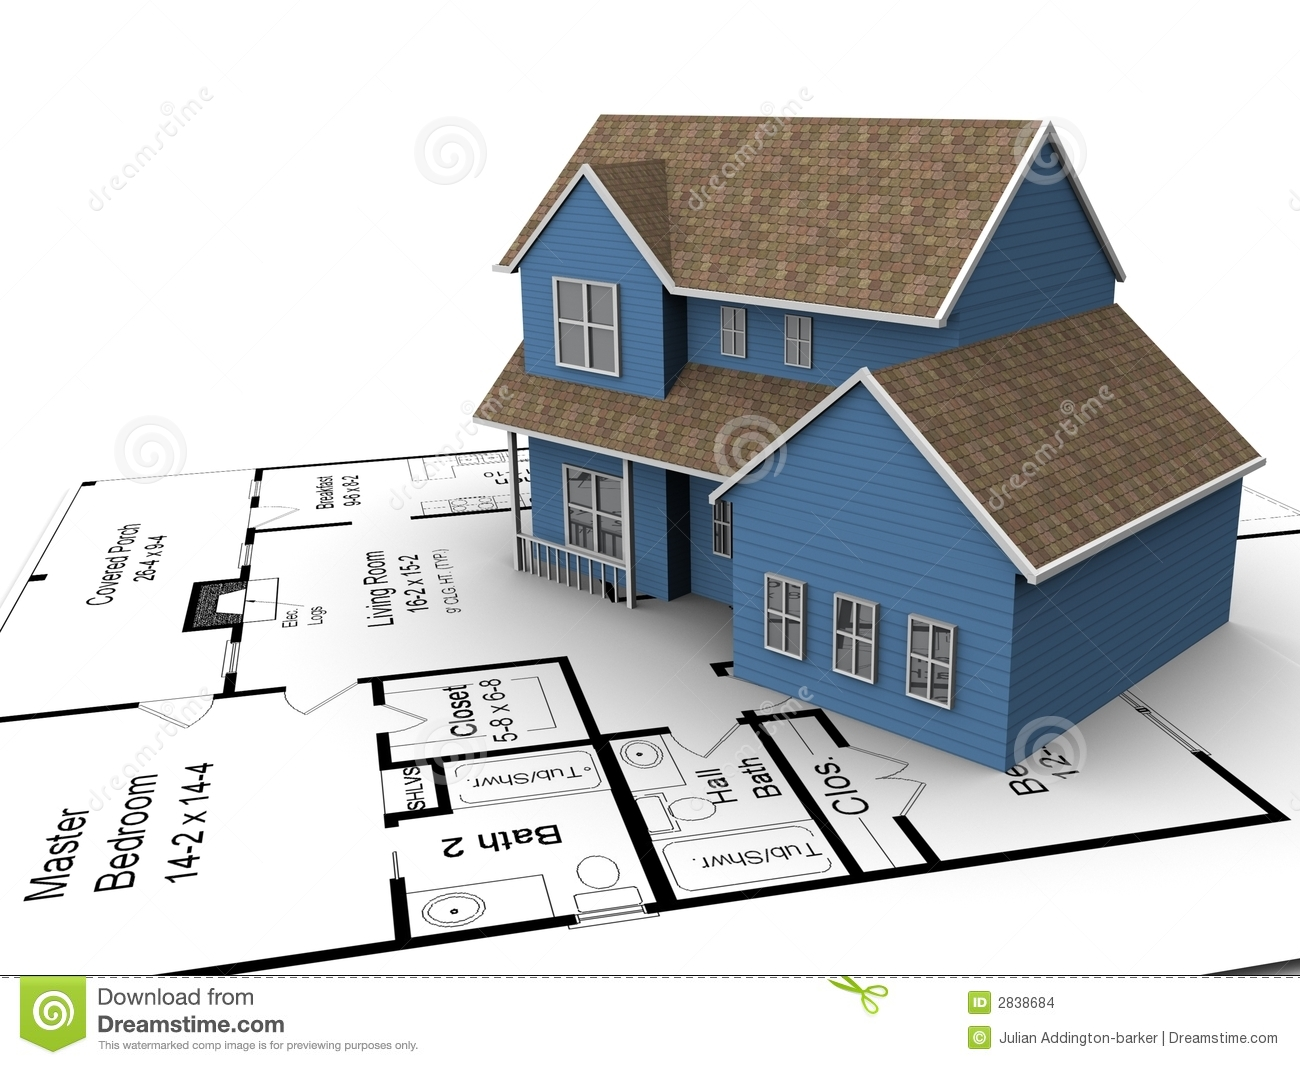 House plan clipart for Home construction design